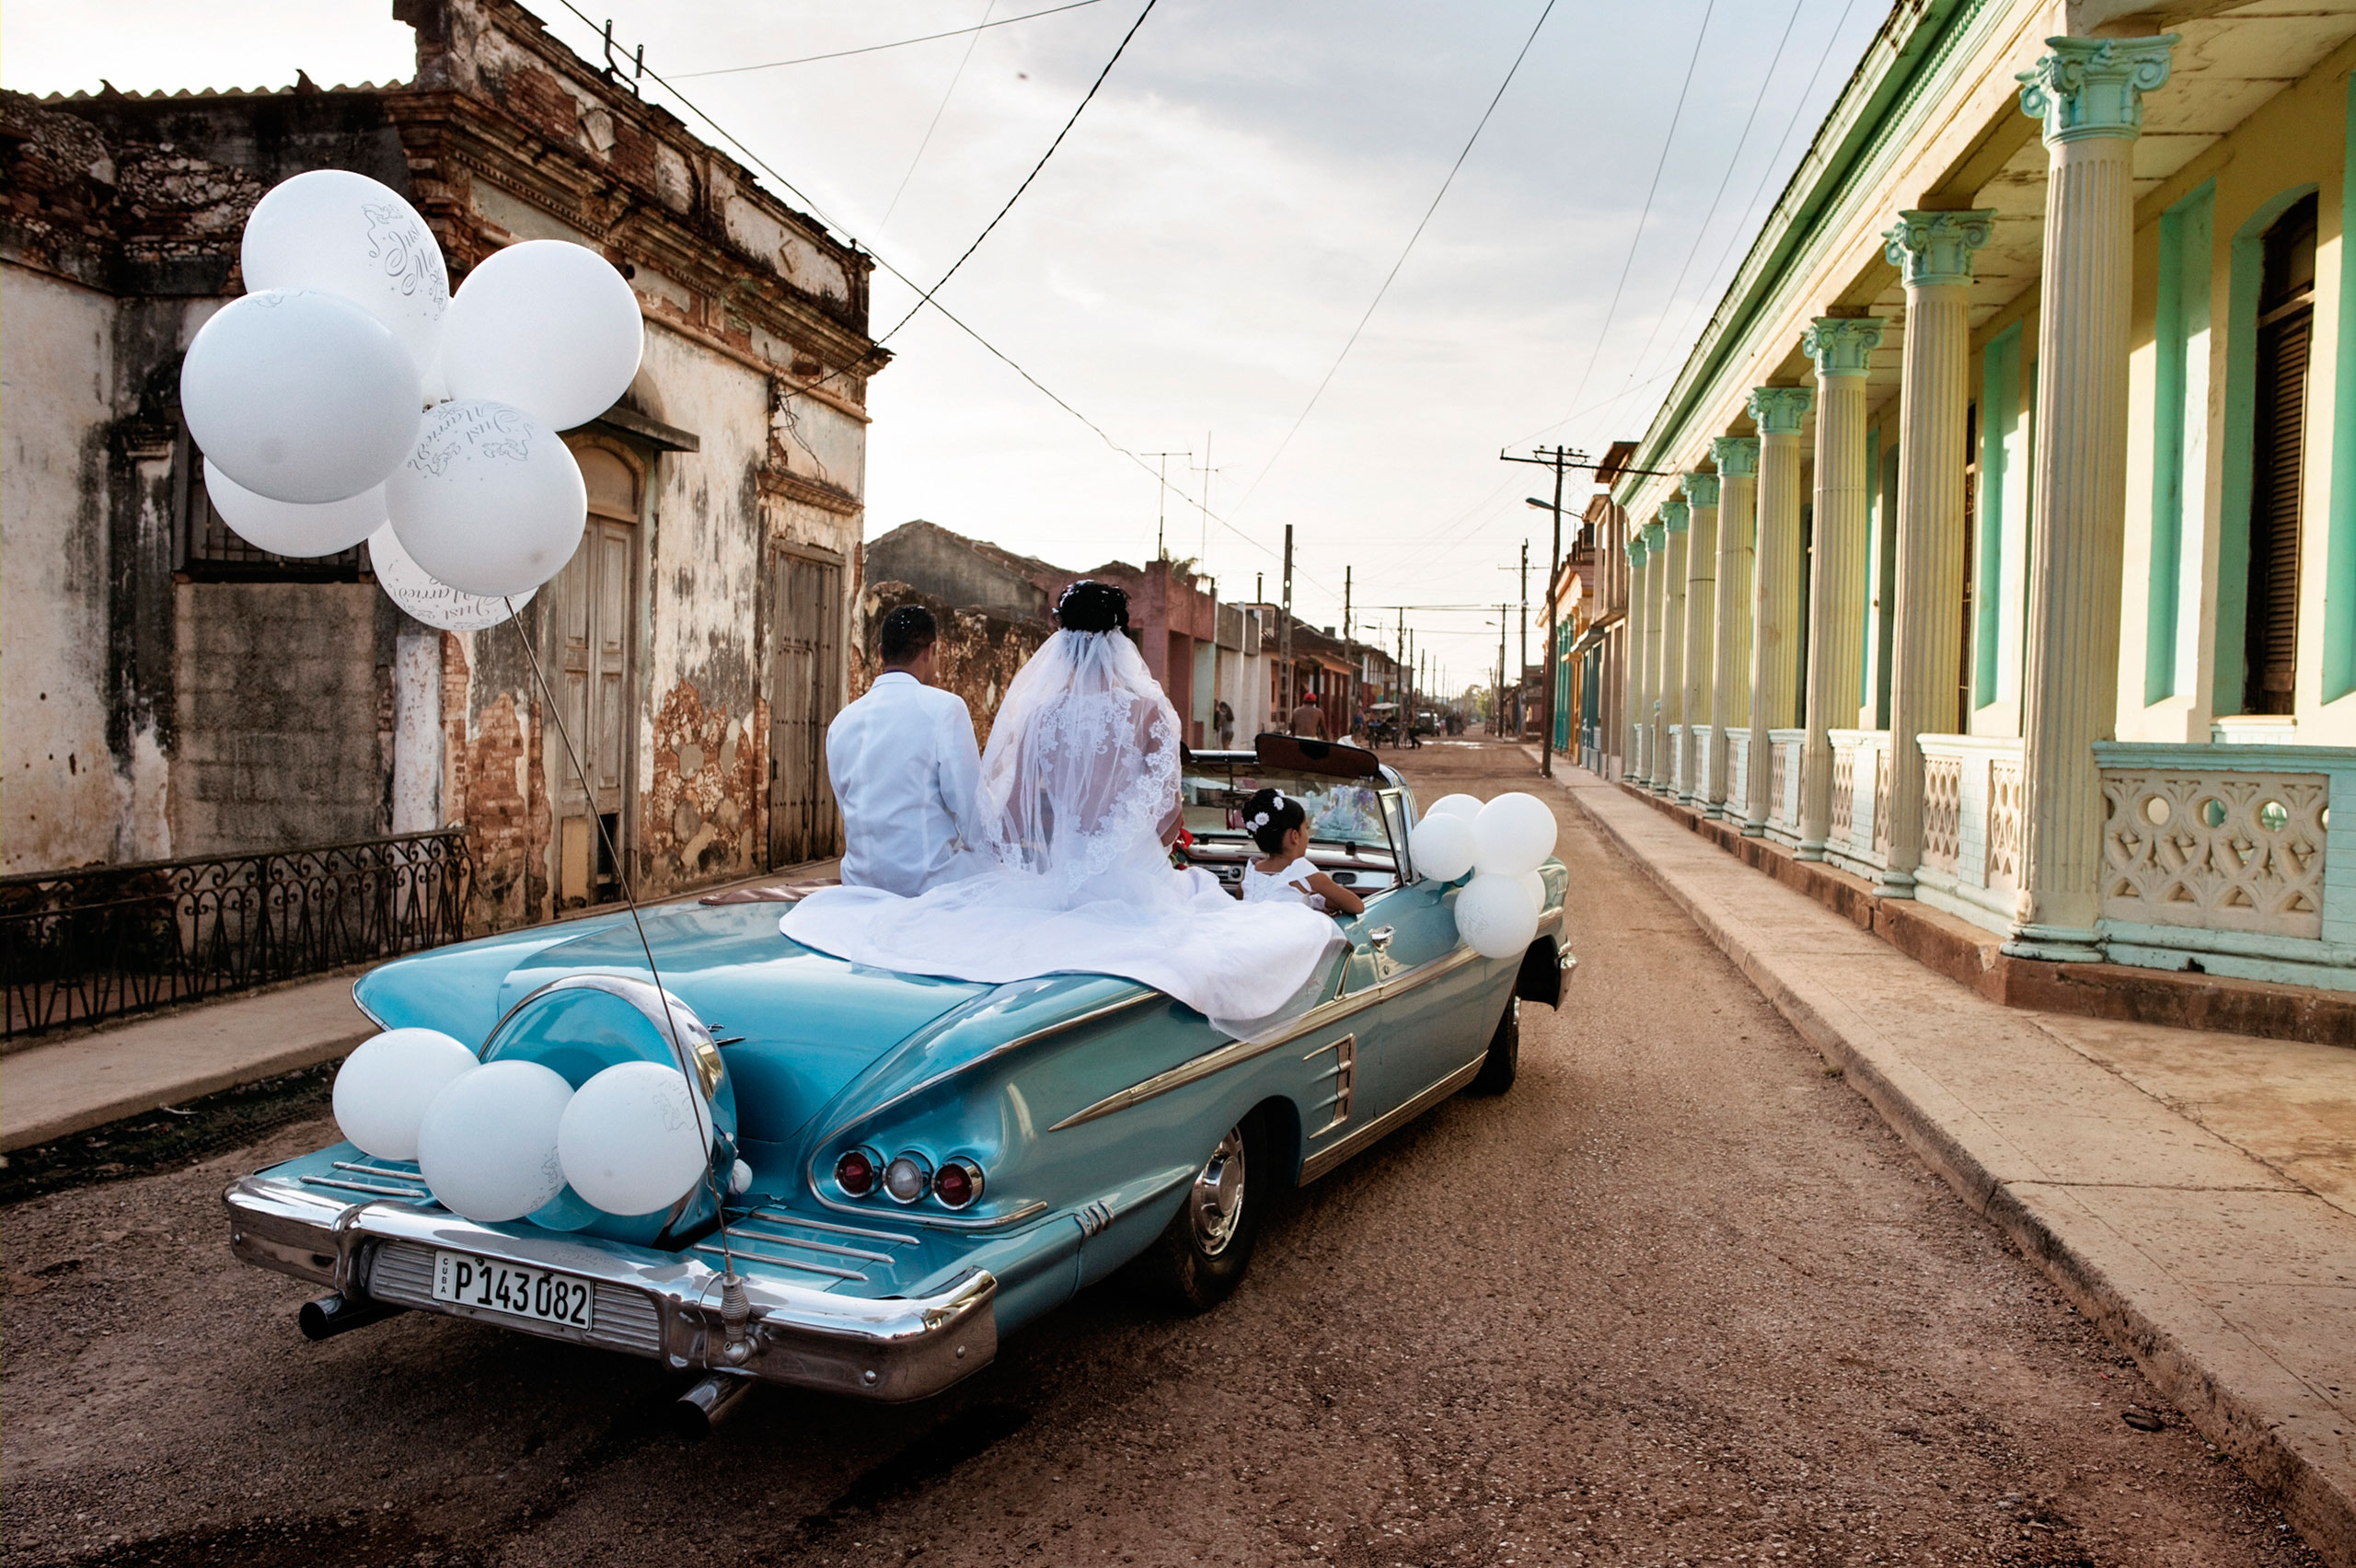 Newlyweds ride in a vintage American car through the streets of Guira de Melena. In this prosperous area outside Havana, weddings can cost as much as $20,000.From  Take a Walk Through the Streets of Cuba